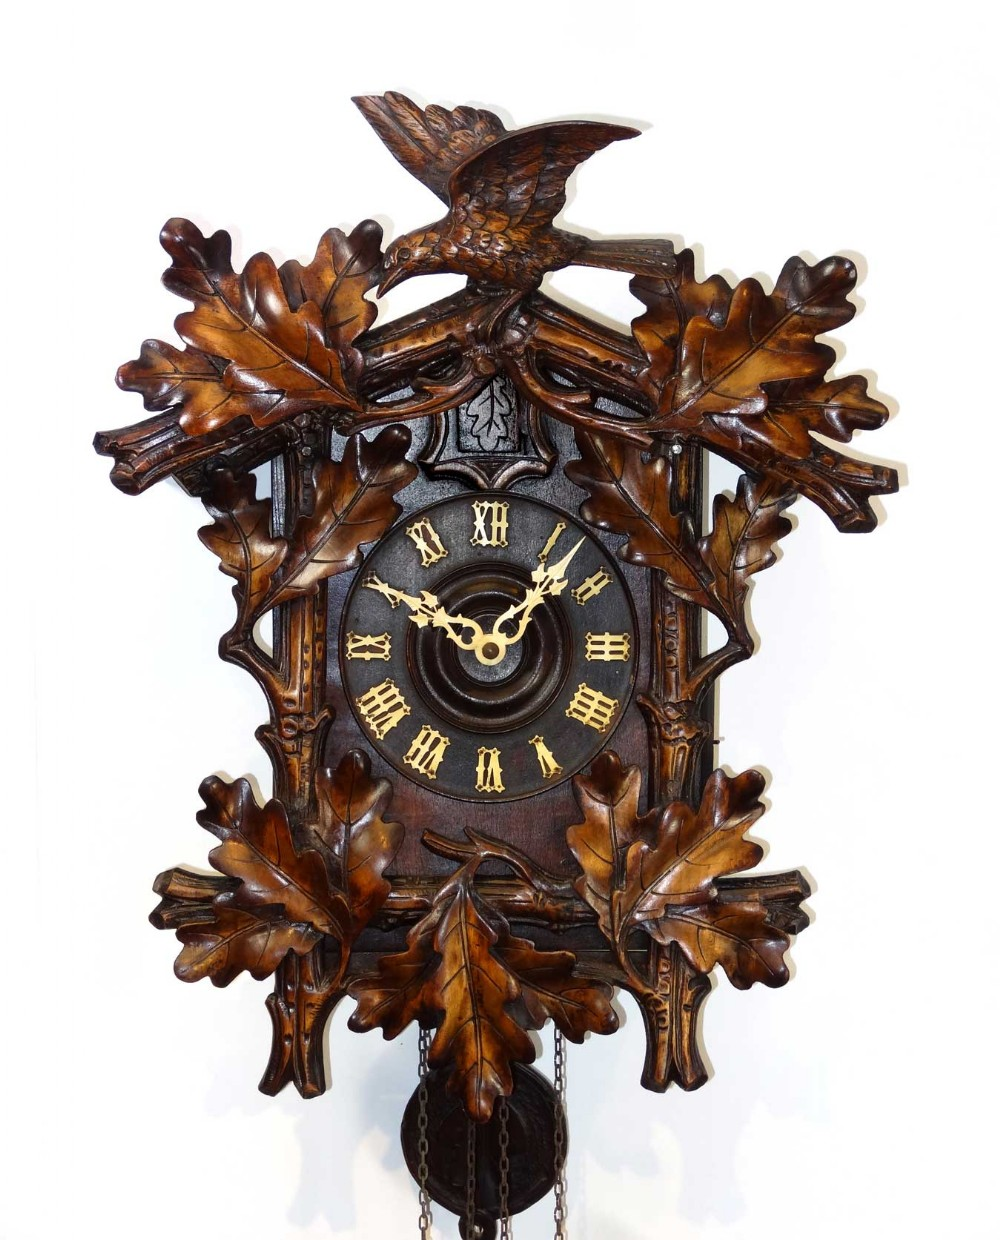 Black forest antique cuckoo clock 254314 How to make a cuckoo clock